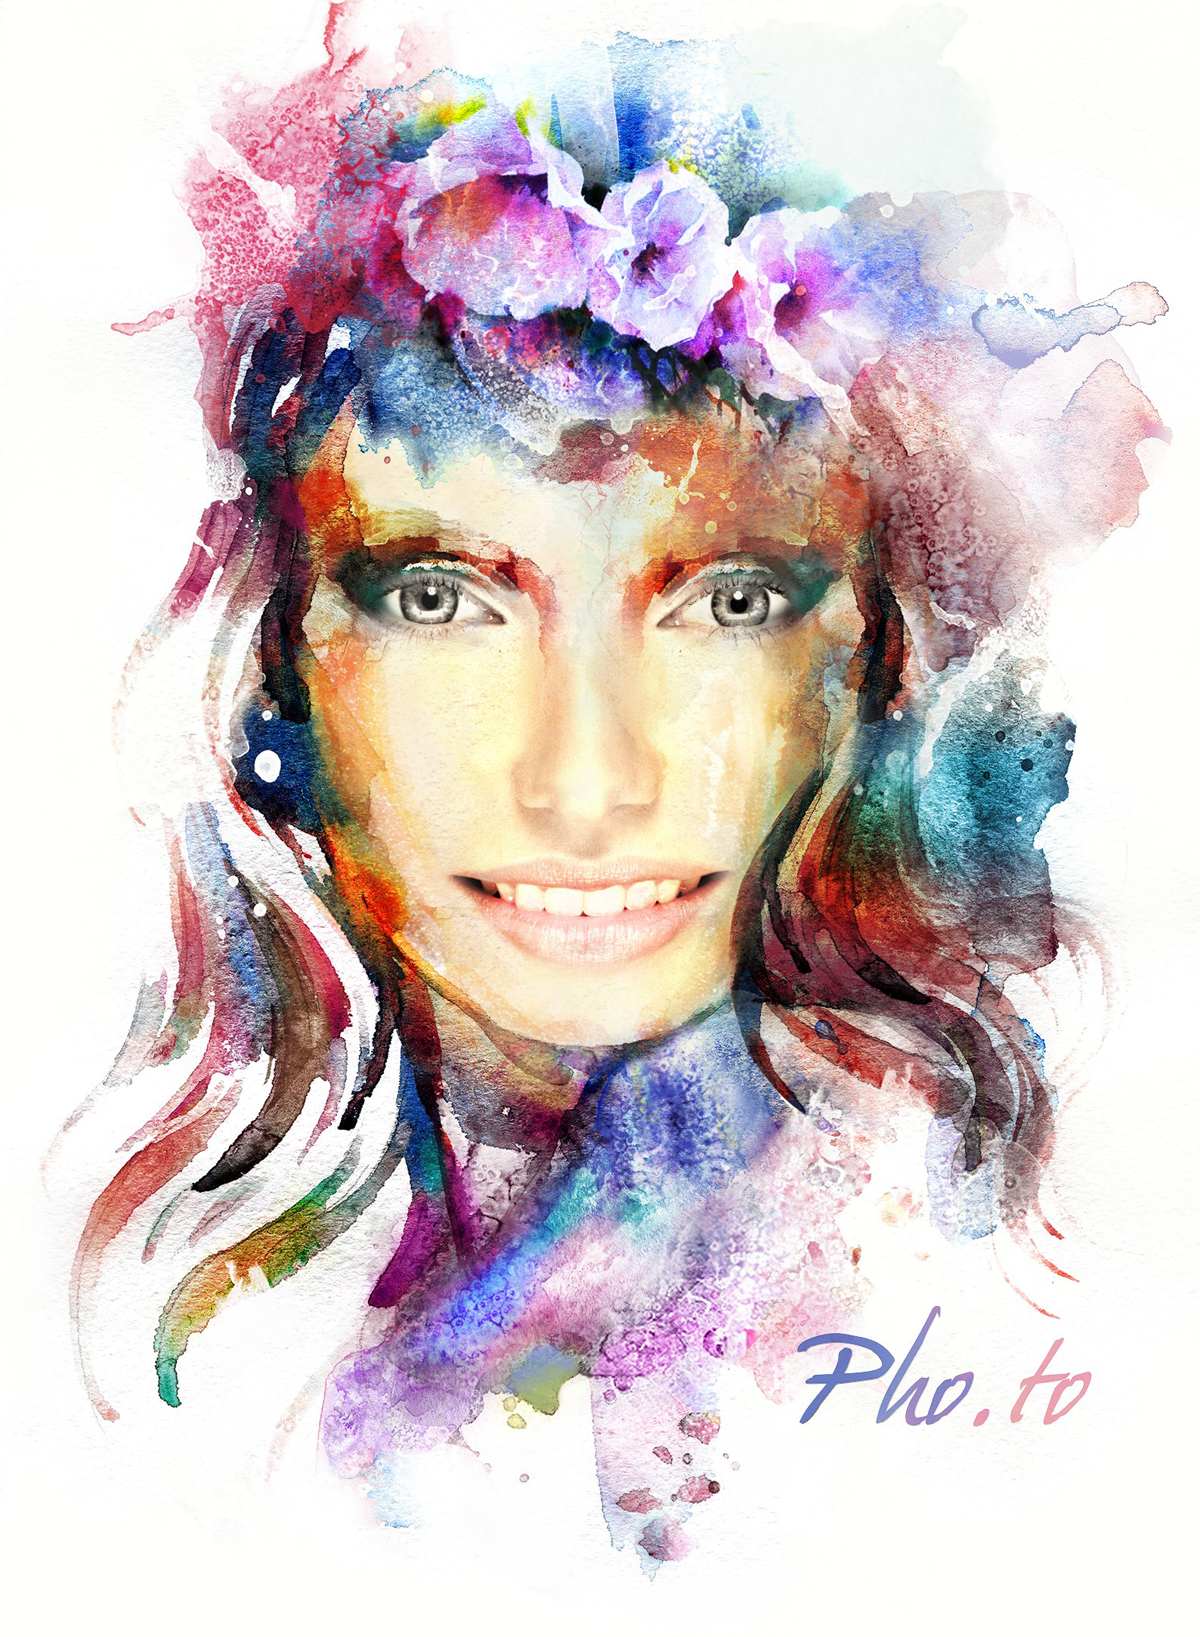 A female watercolor portrait created online from a face photo.